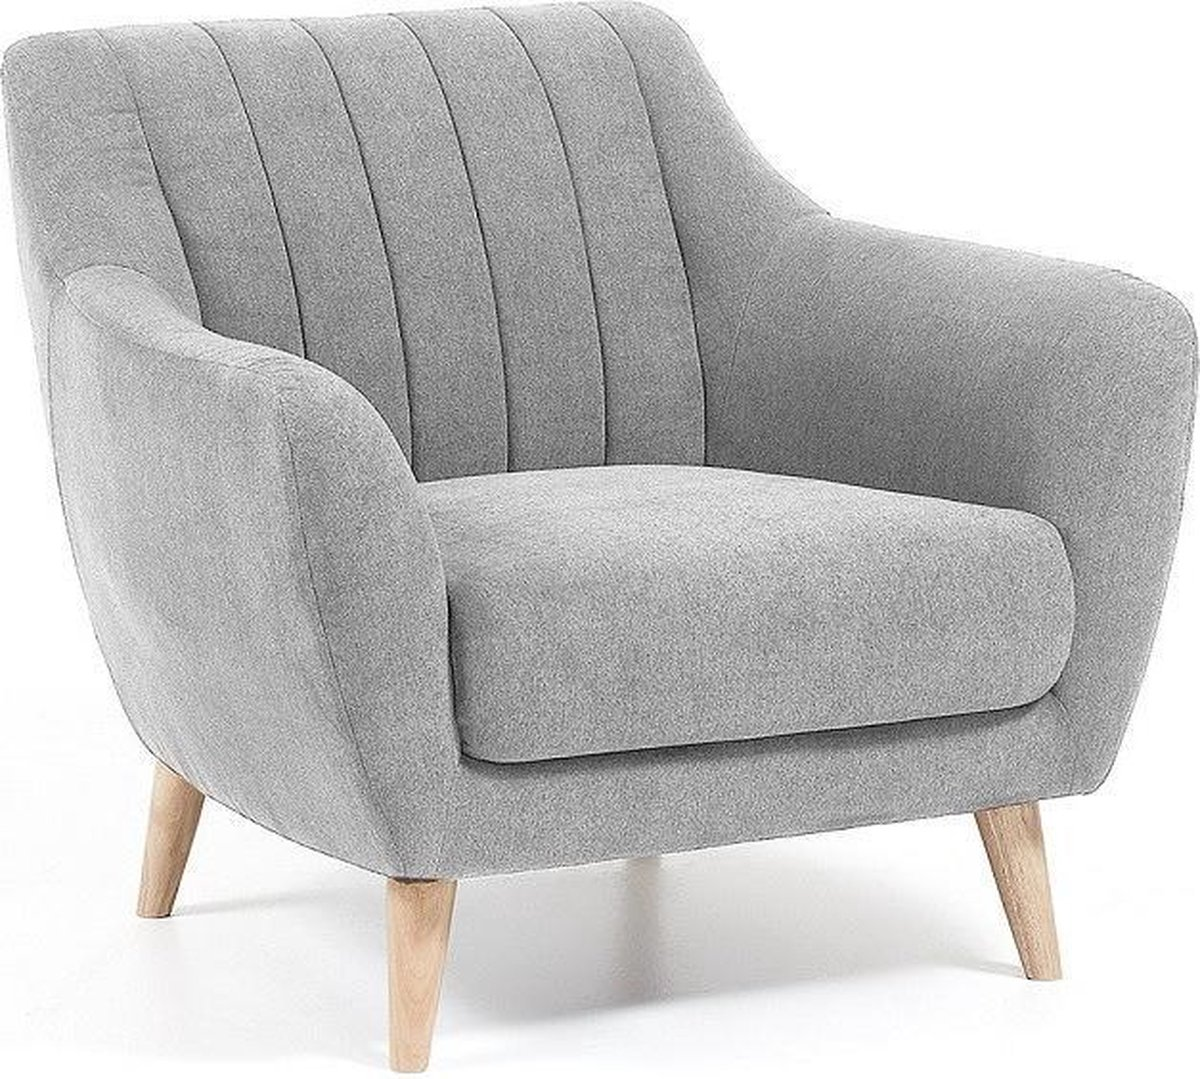 Kave Home Off - Fauteuil -  lichtgrijs - gestoffeerd - Kave Home